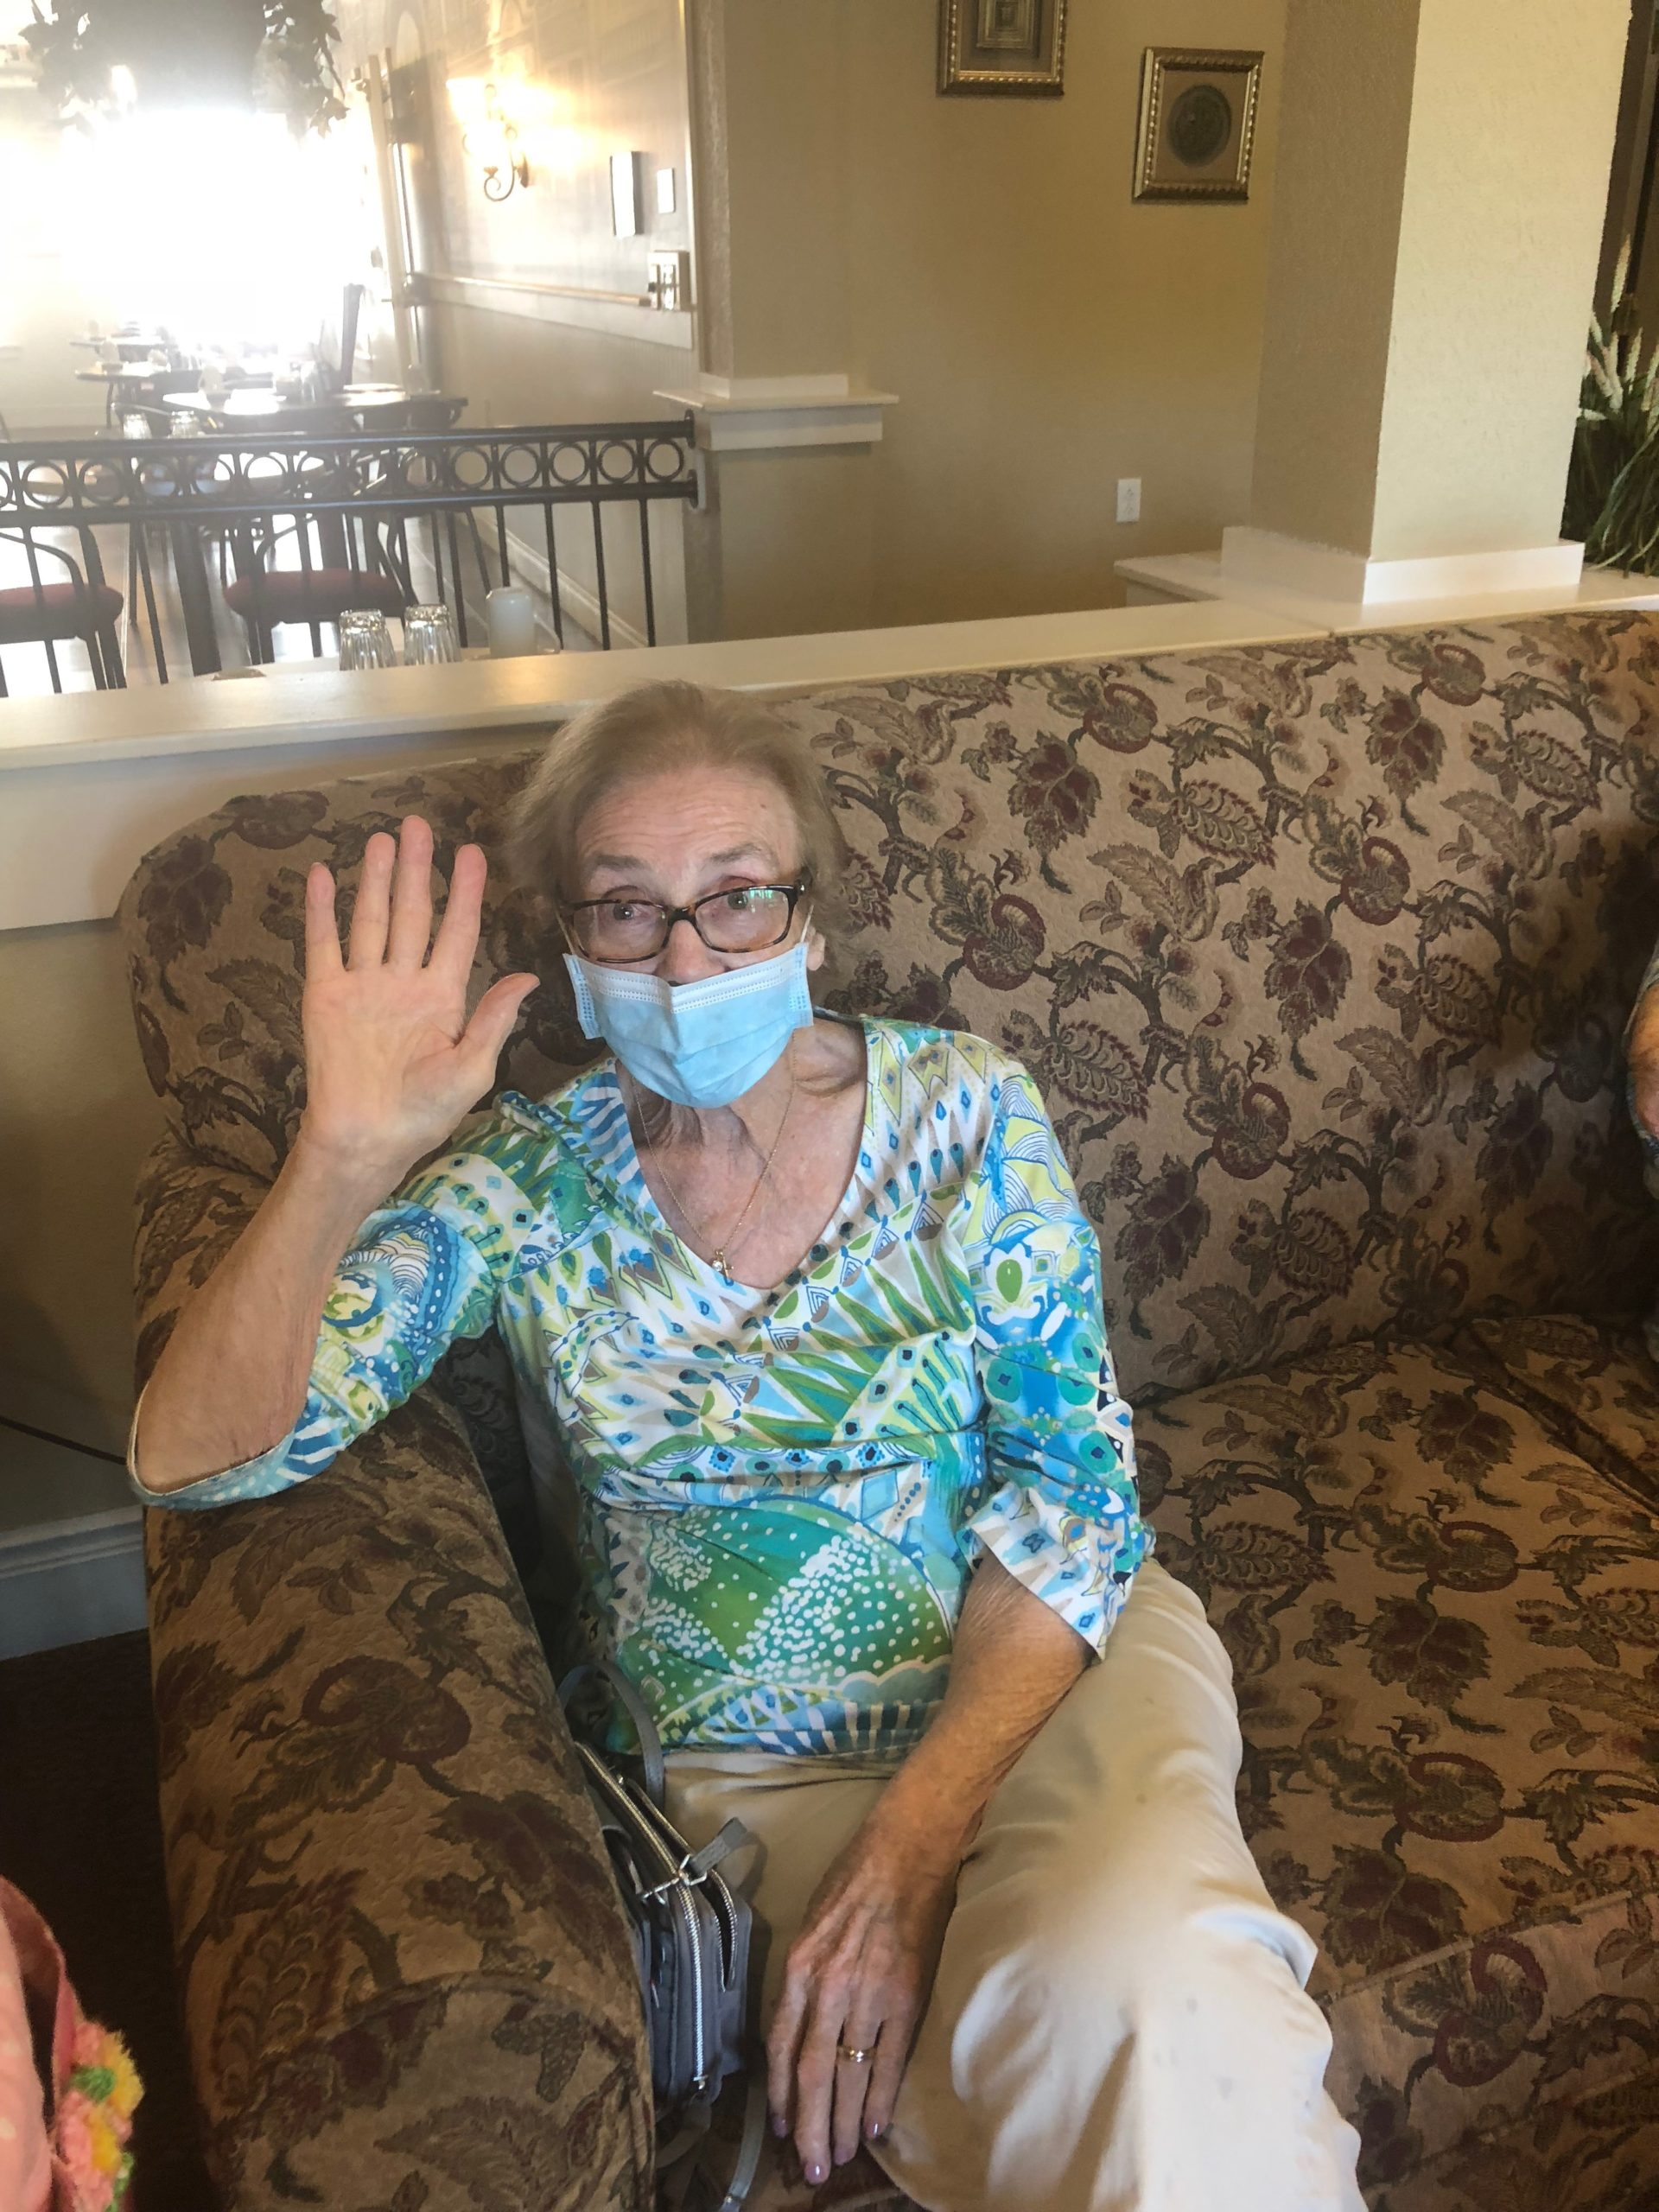 Shirley says hello and that she is wearing her mask.